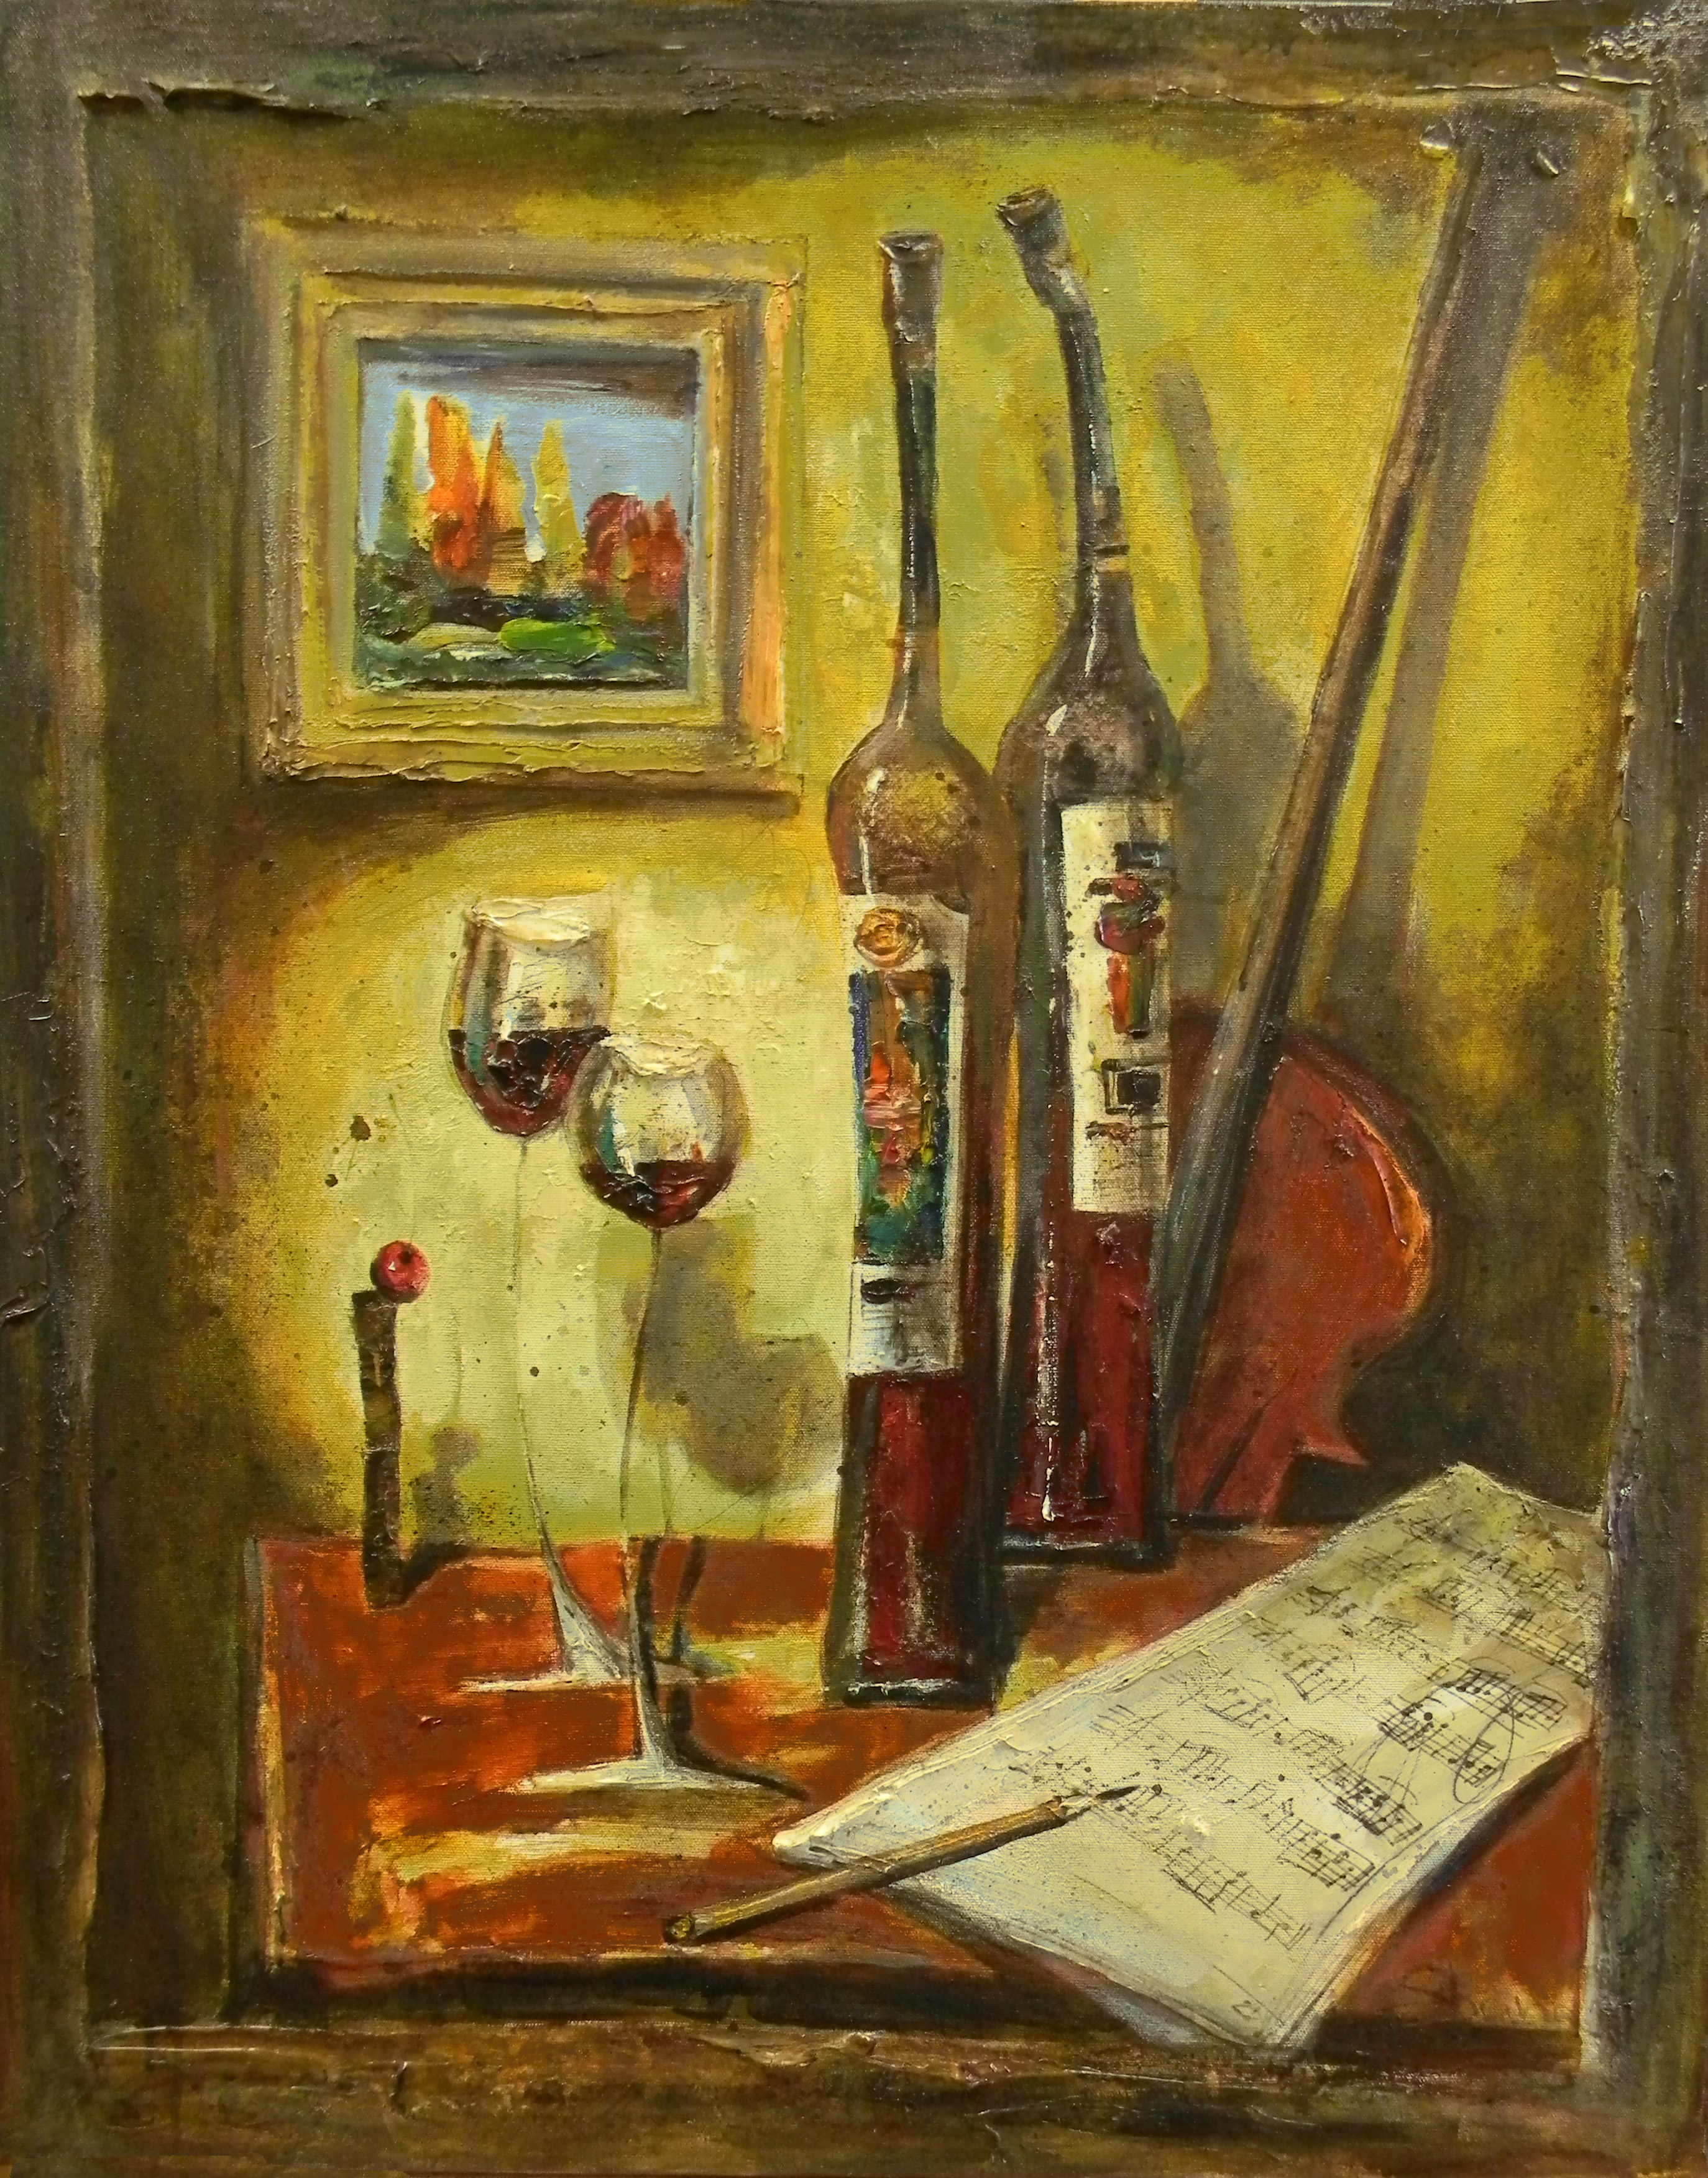 Still Life With Wine Bottles and Violin